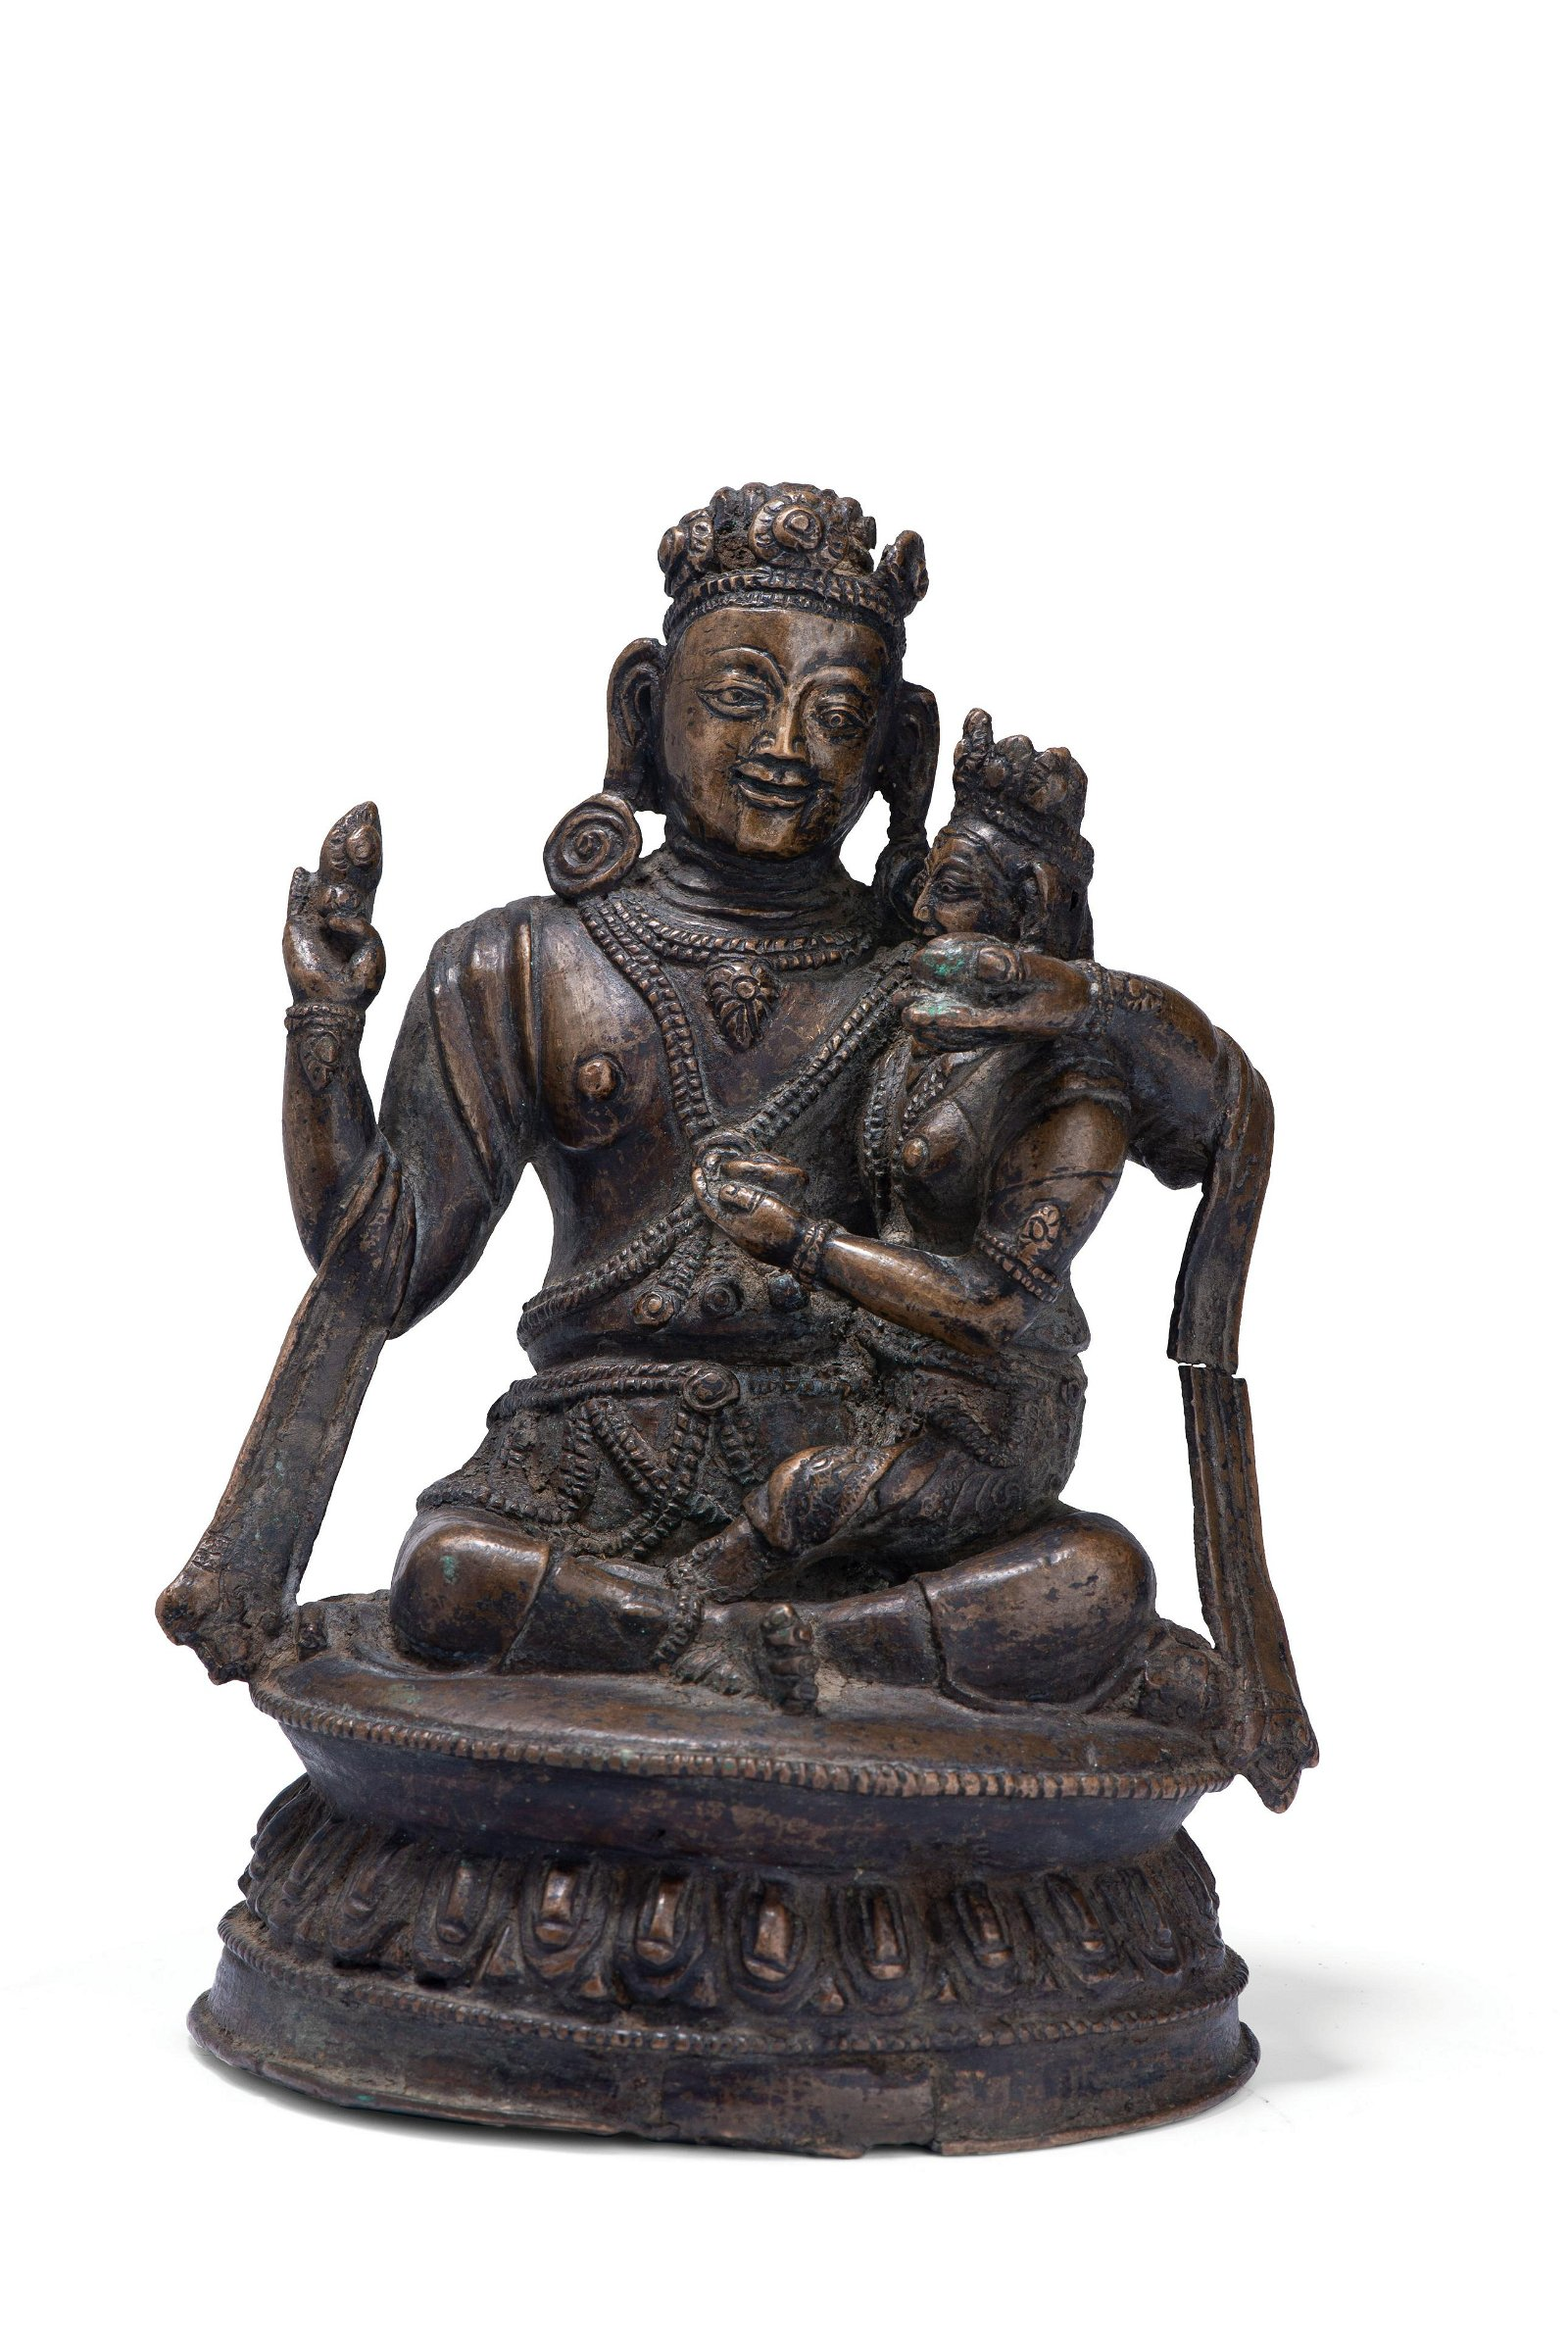 A COPPER ALLOY FIGURE OF MAHASIDDHA, MUSTANG